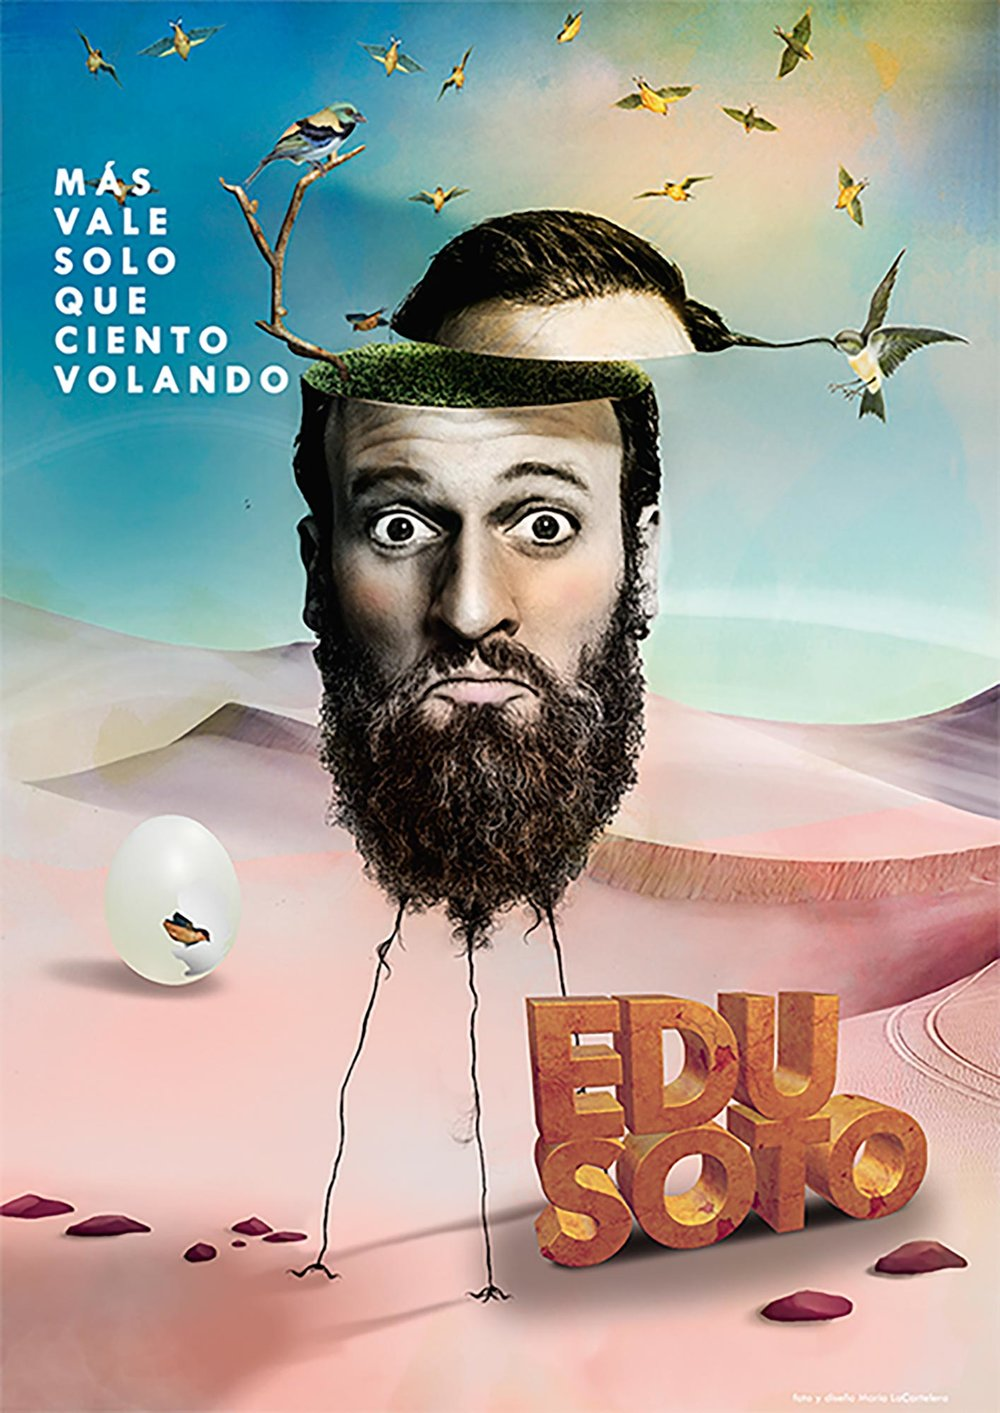 edu-soto-teatro-carrion-valladolid.jpg